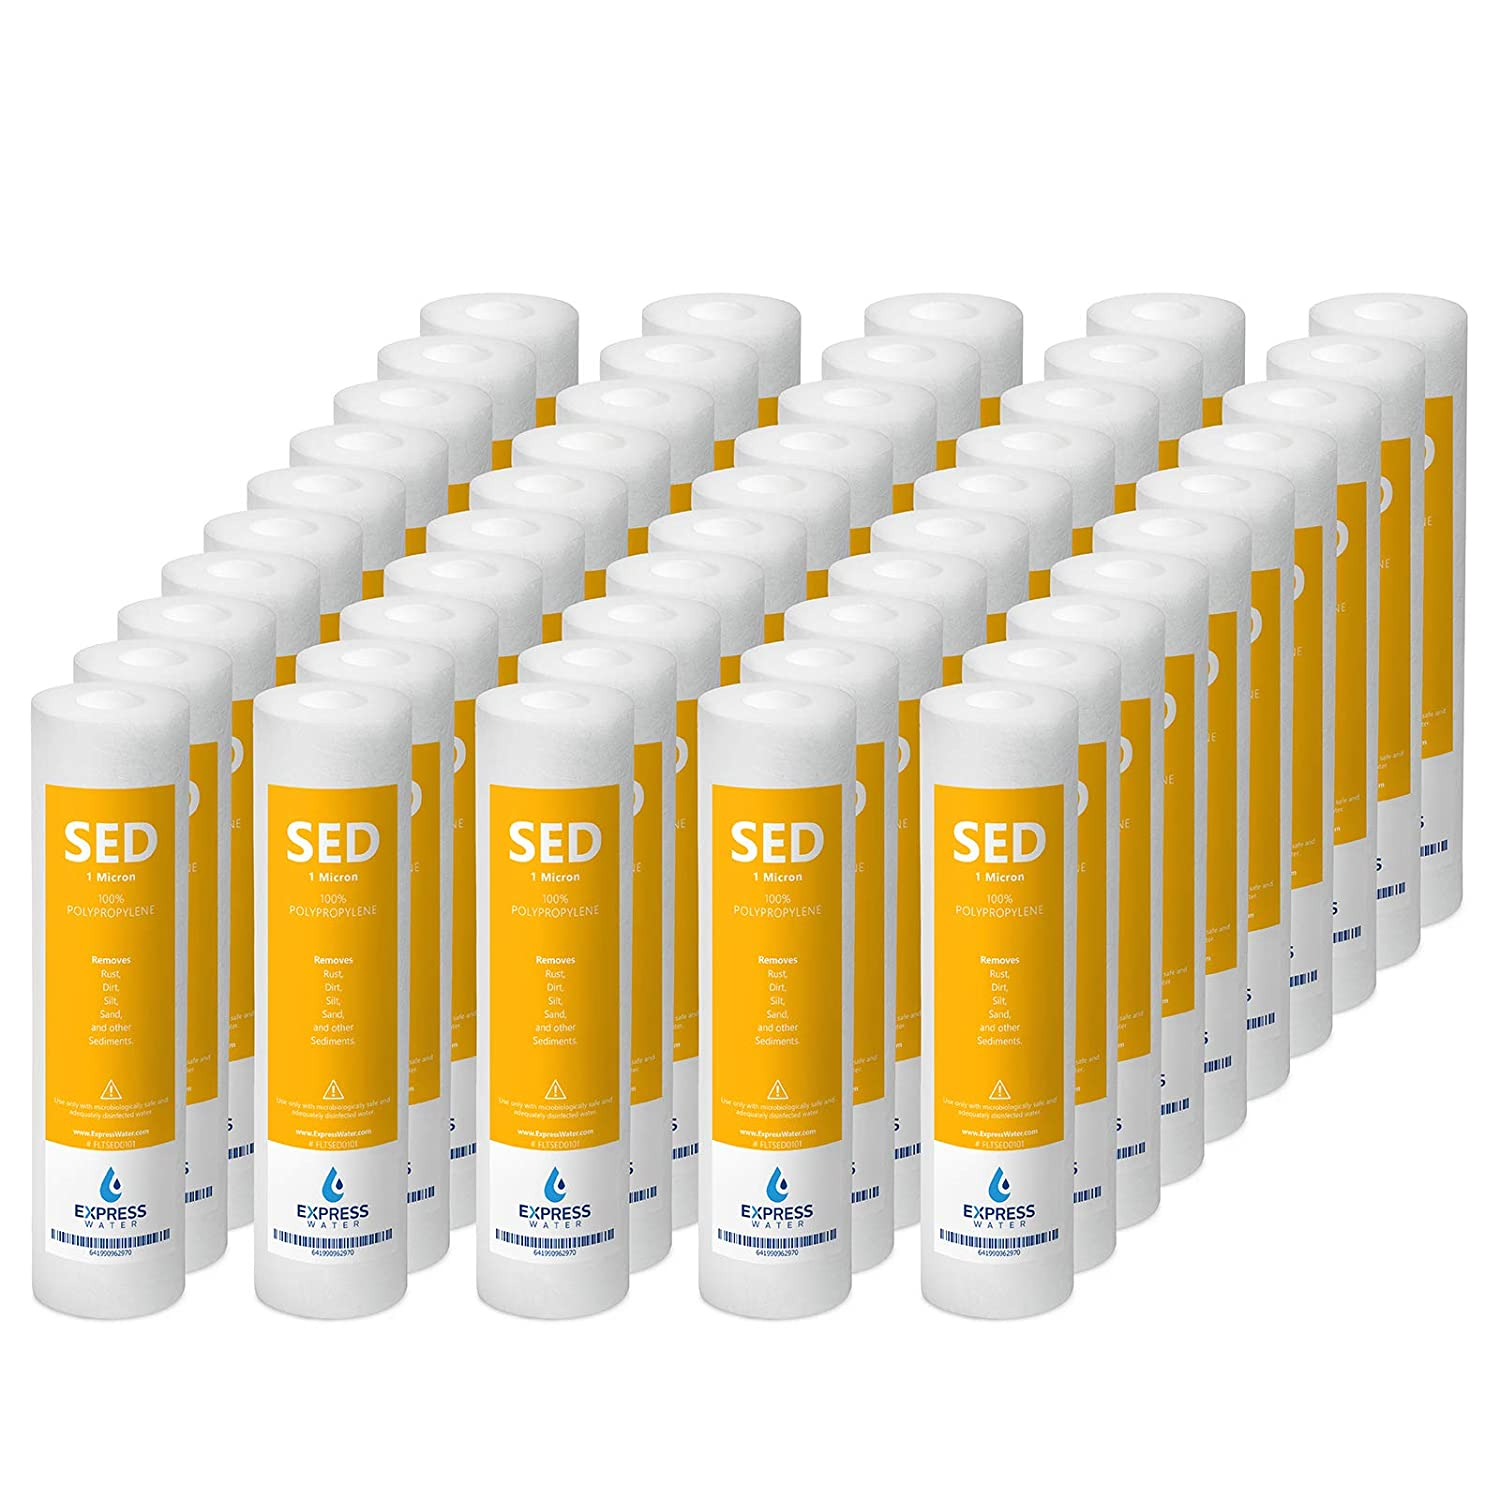 Express Water High Capacity Under Sink and Reverse Osmosis System 10 Pack Sediment Water Filter Replacement 1 Micron 10 inch